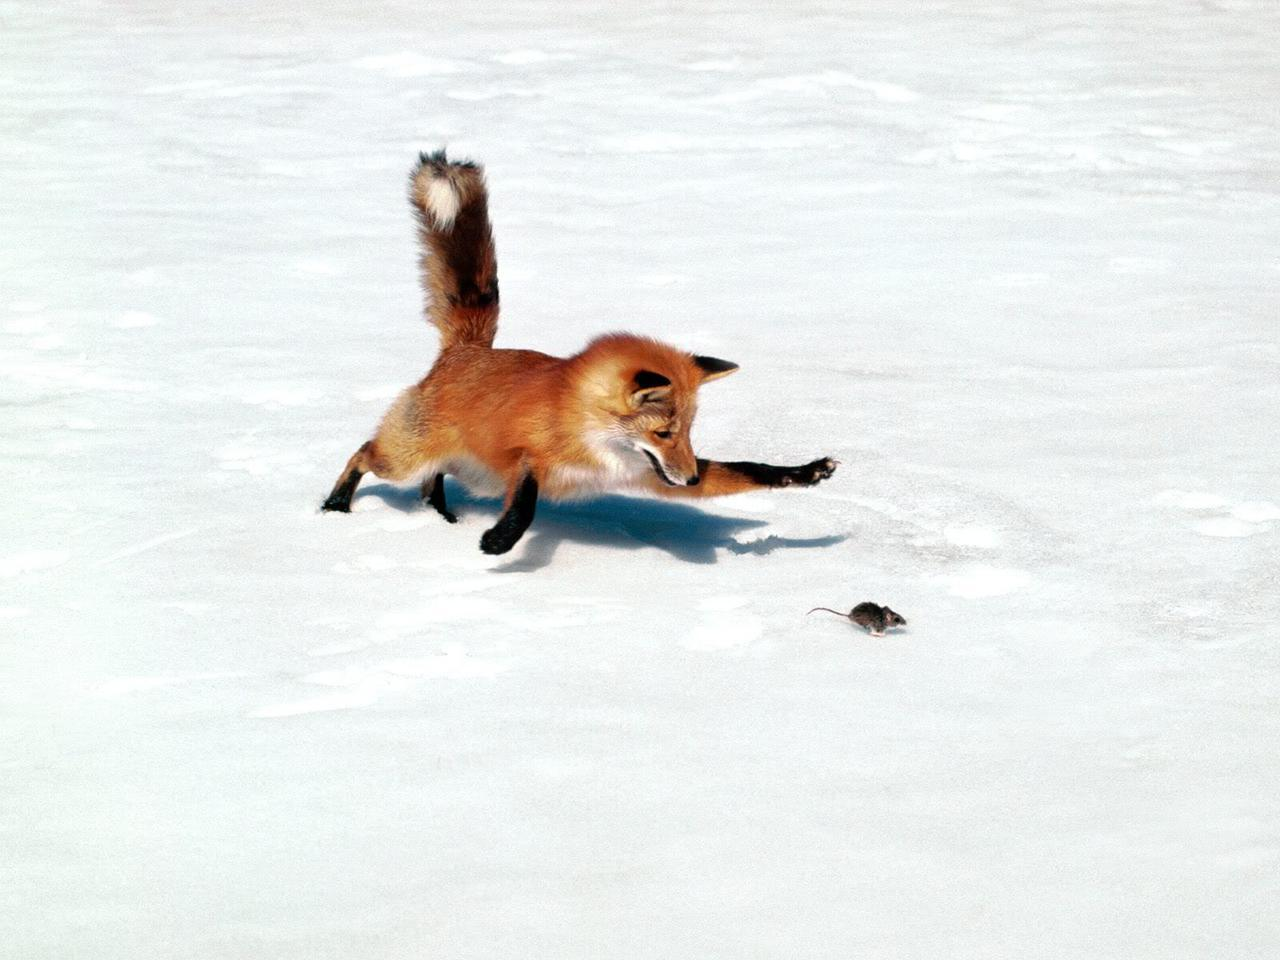 chase, cold, fox, fun, hunt, mouse, orange, winter